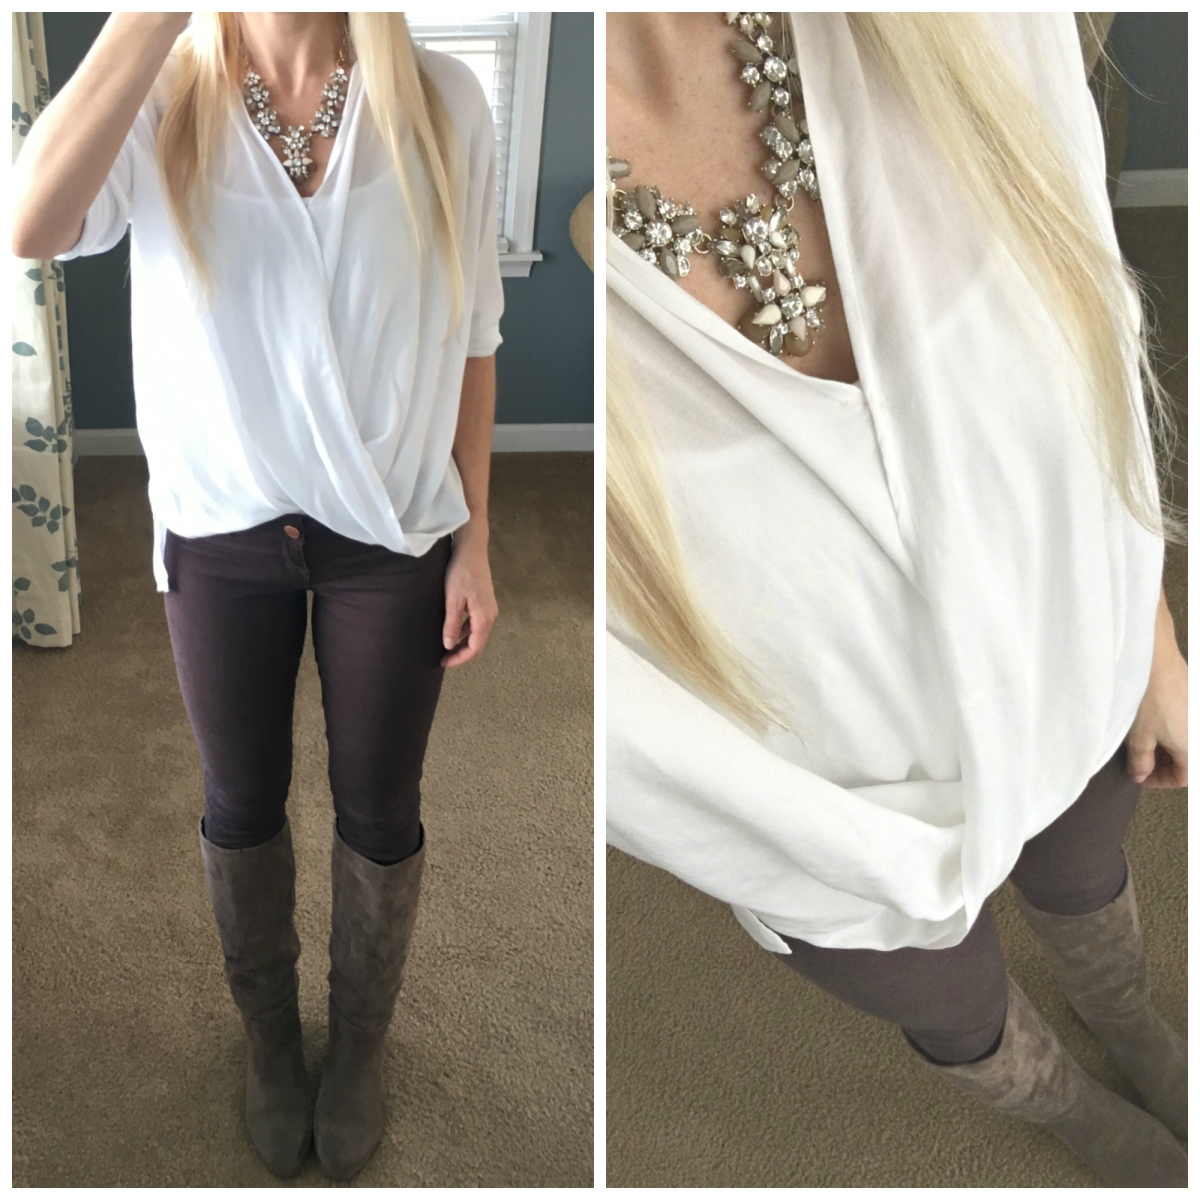 Flowy t-shirt blouse dressed up with a statement necklace and mauve skinny jeans and boots